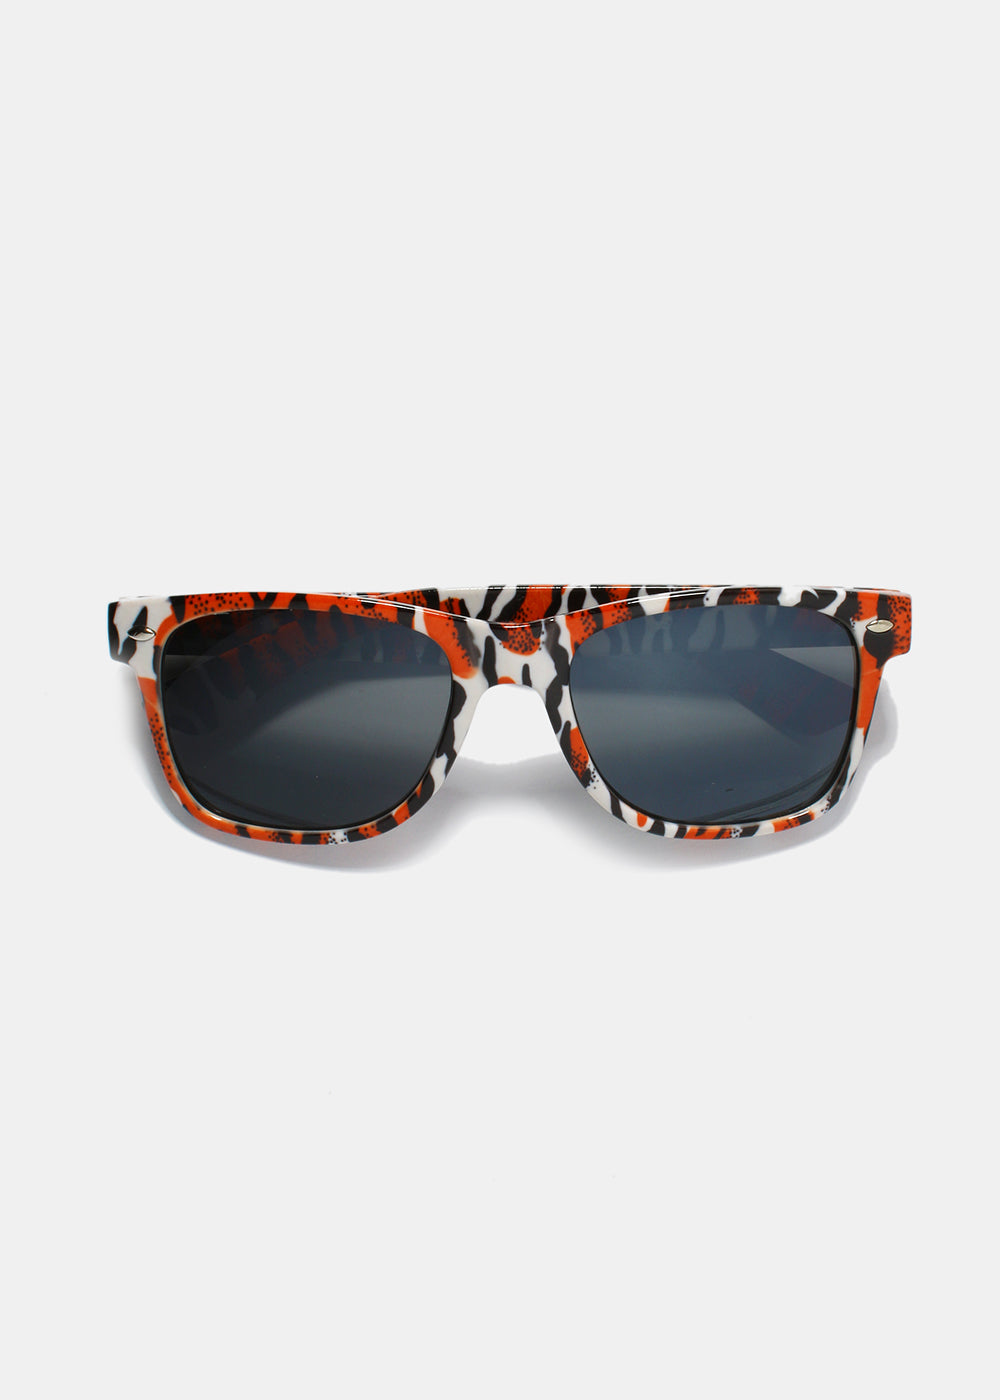 c0c3a29979 Multi-Color Animal Print Sunglasses- Red